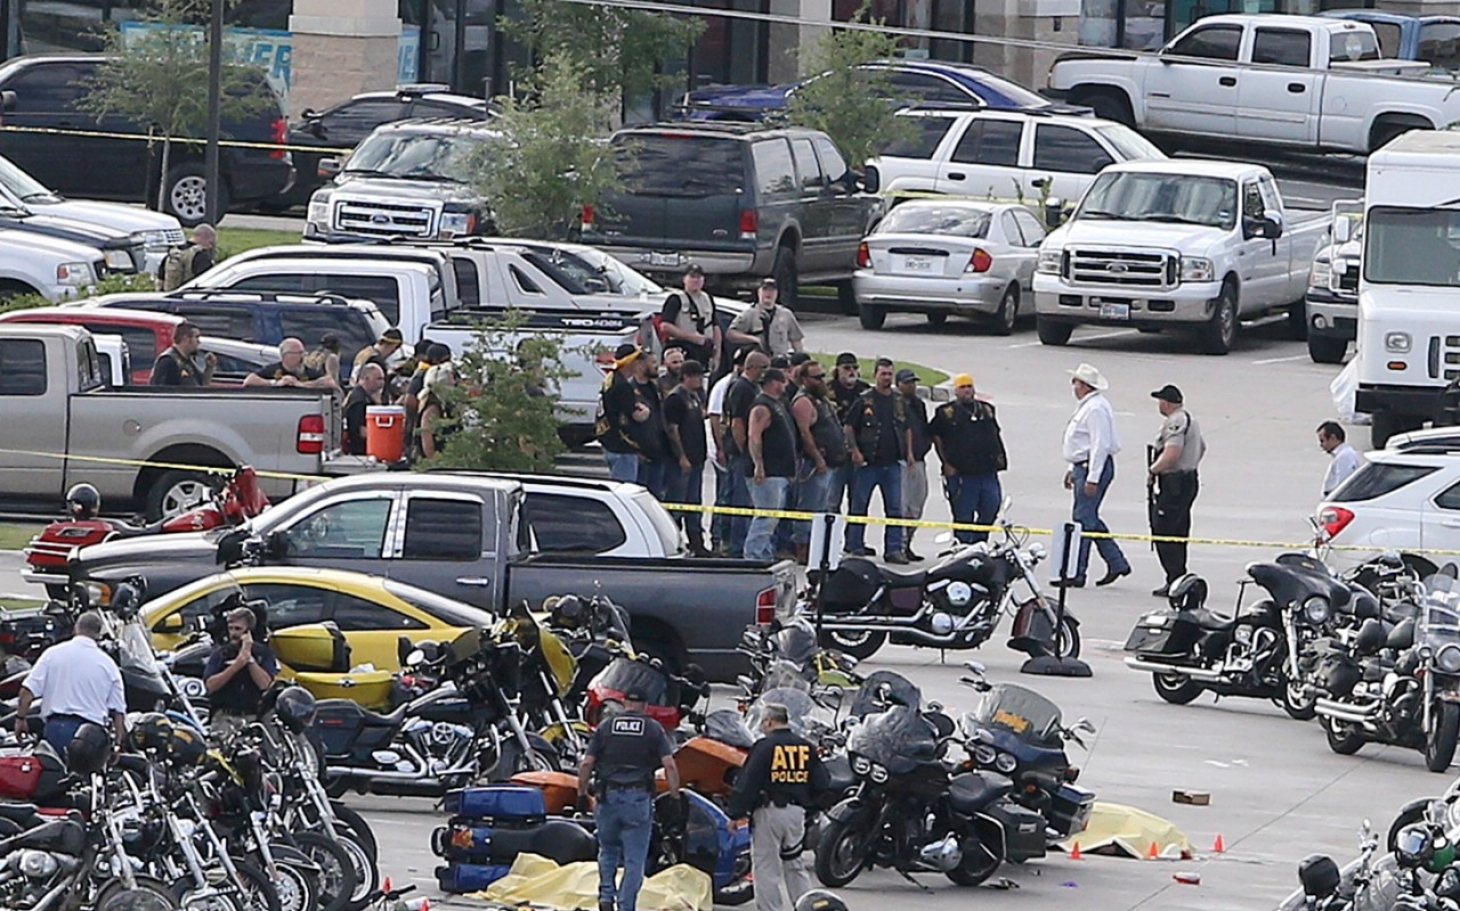 tragedy in waco texas A shootout between two rival biker groups in waco, texas, left nine people dead on this episode of embedded, kelly mcevers tries to understand what caused the fight.